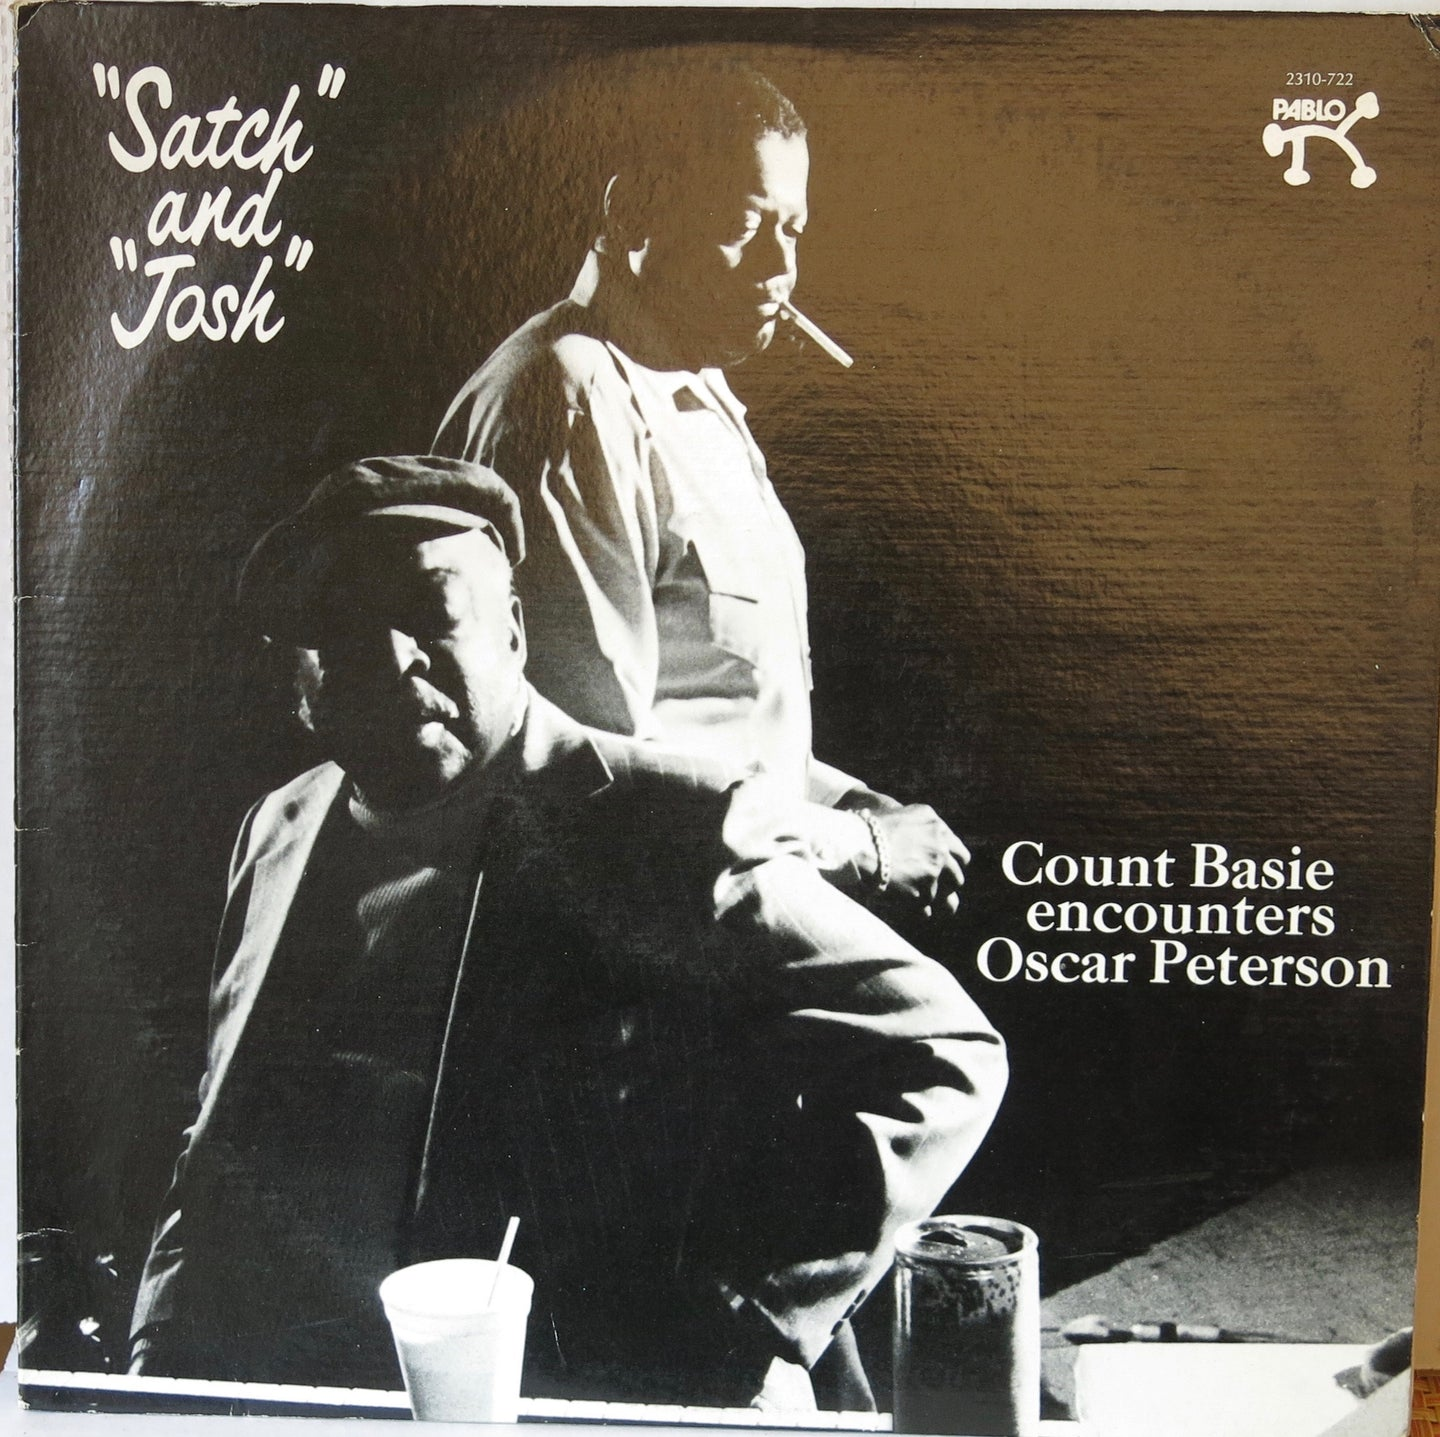 Count Basie encounters Oscar Peterson ‎–